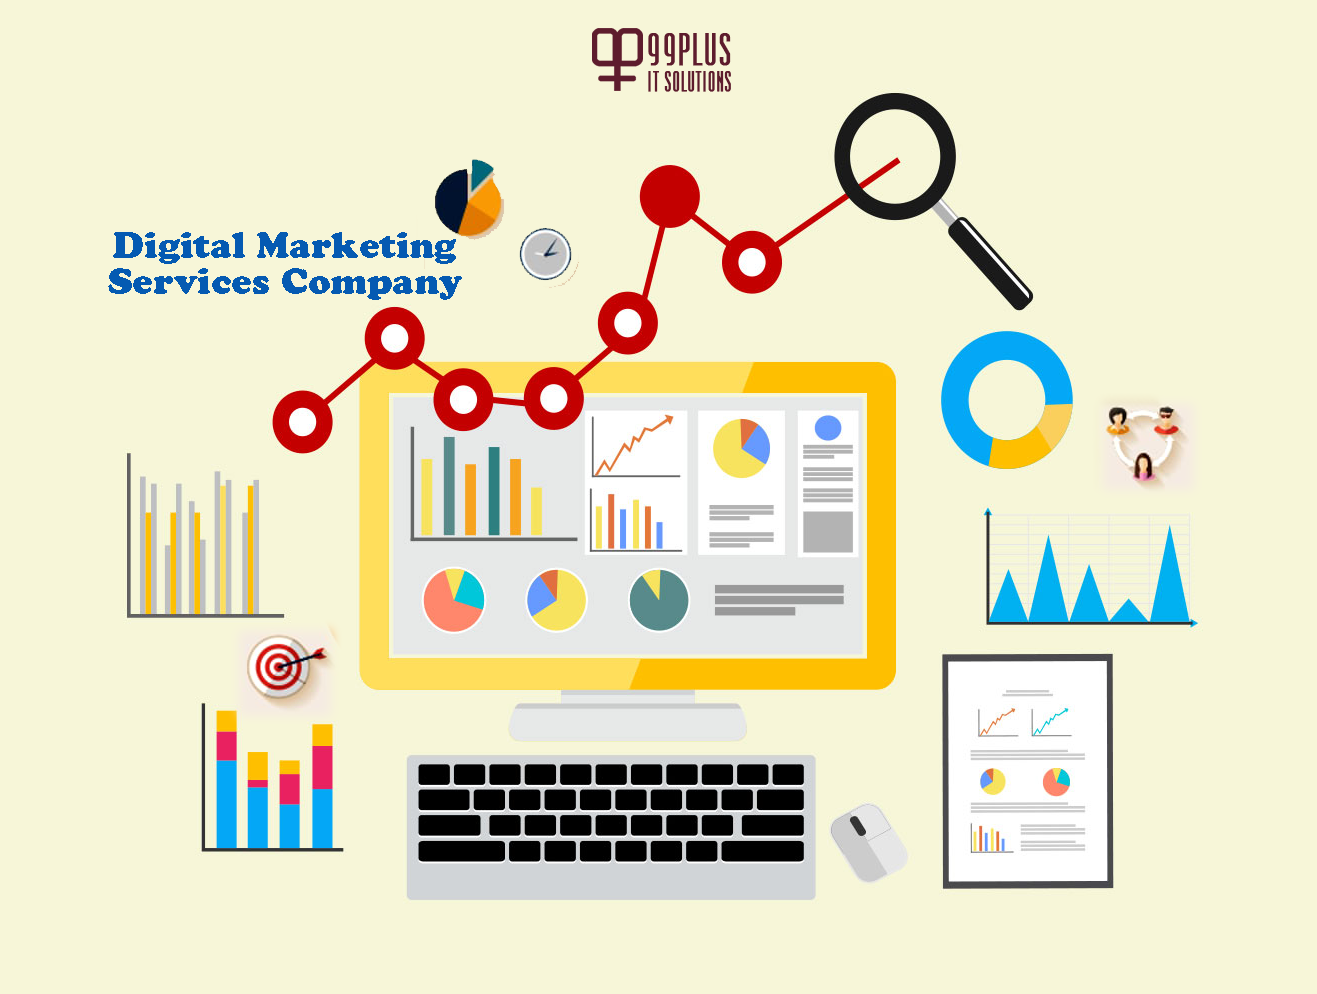 We provide best digital marketing services like search